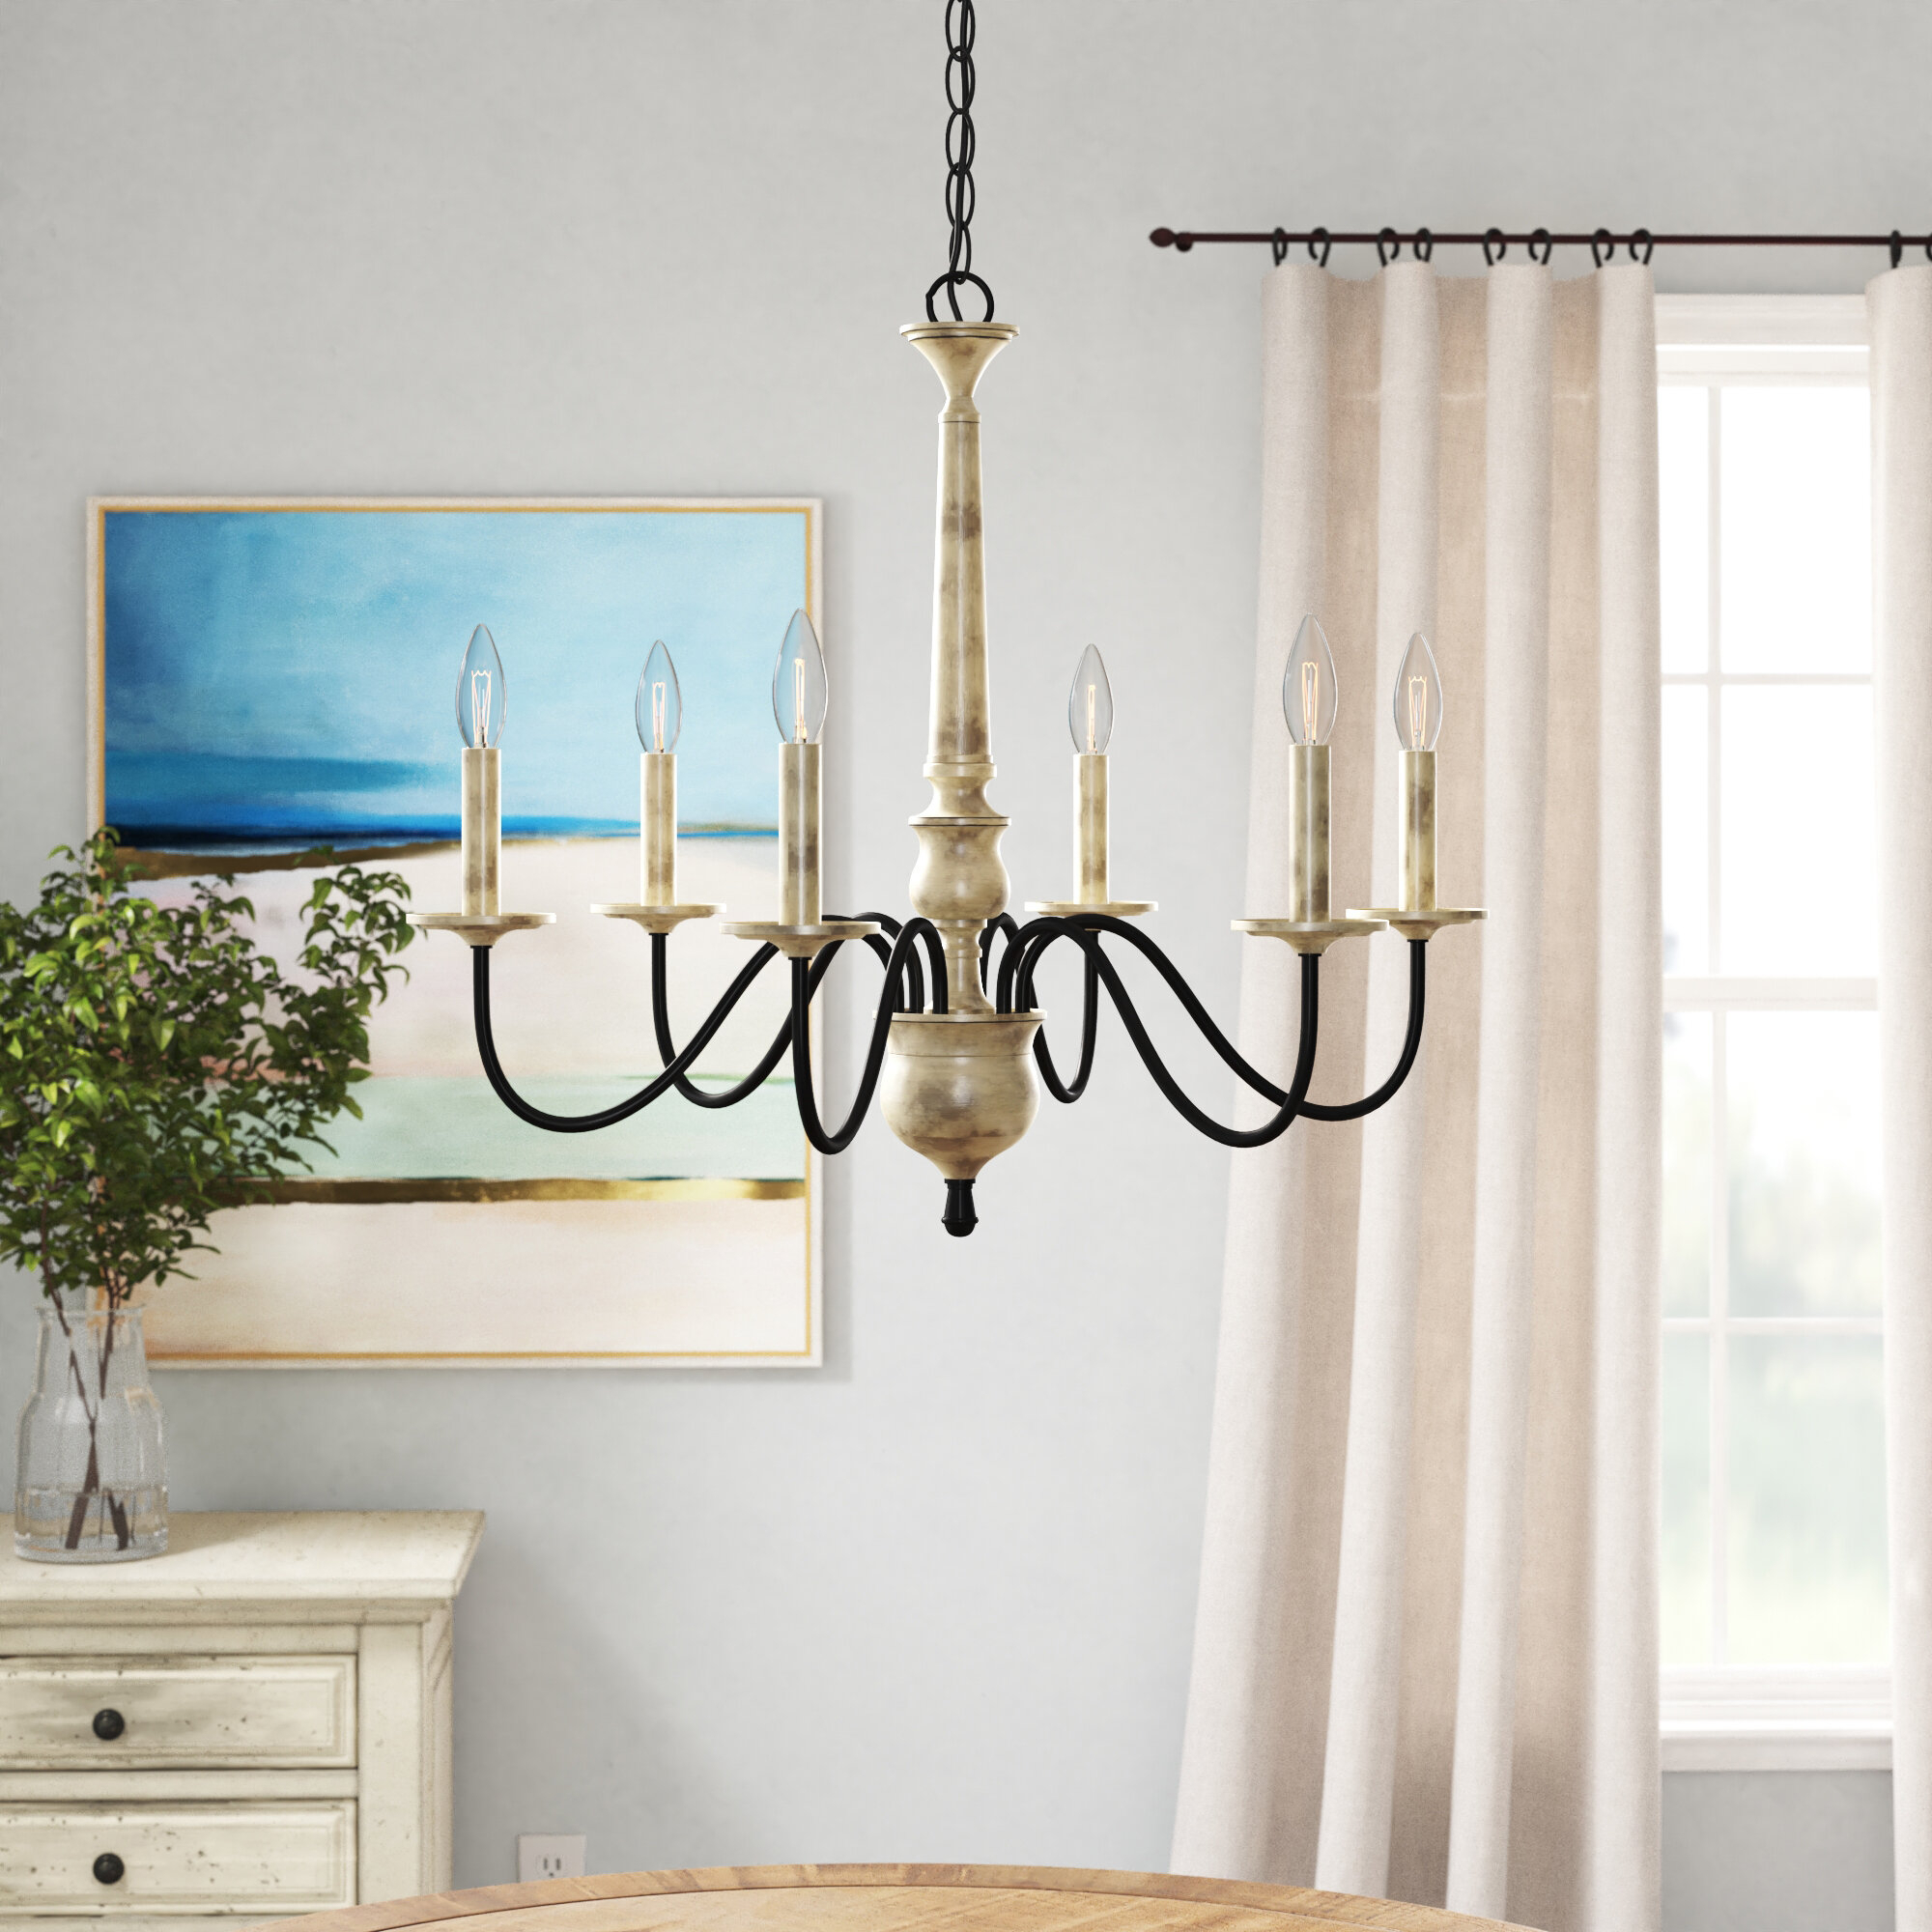 Helen 6 Light Chandelier Within Bouchette Traditional 6 Light Candle Style Chandeliers (View 19 of 30)